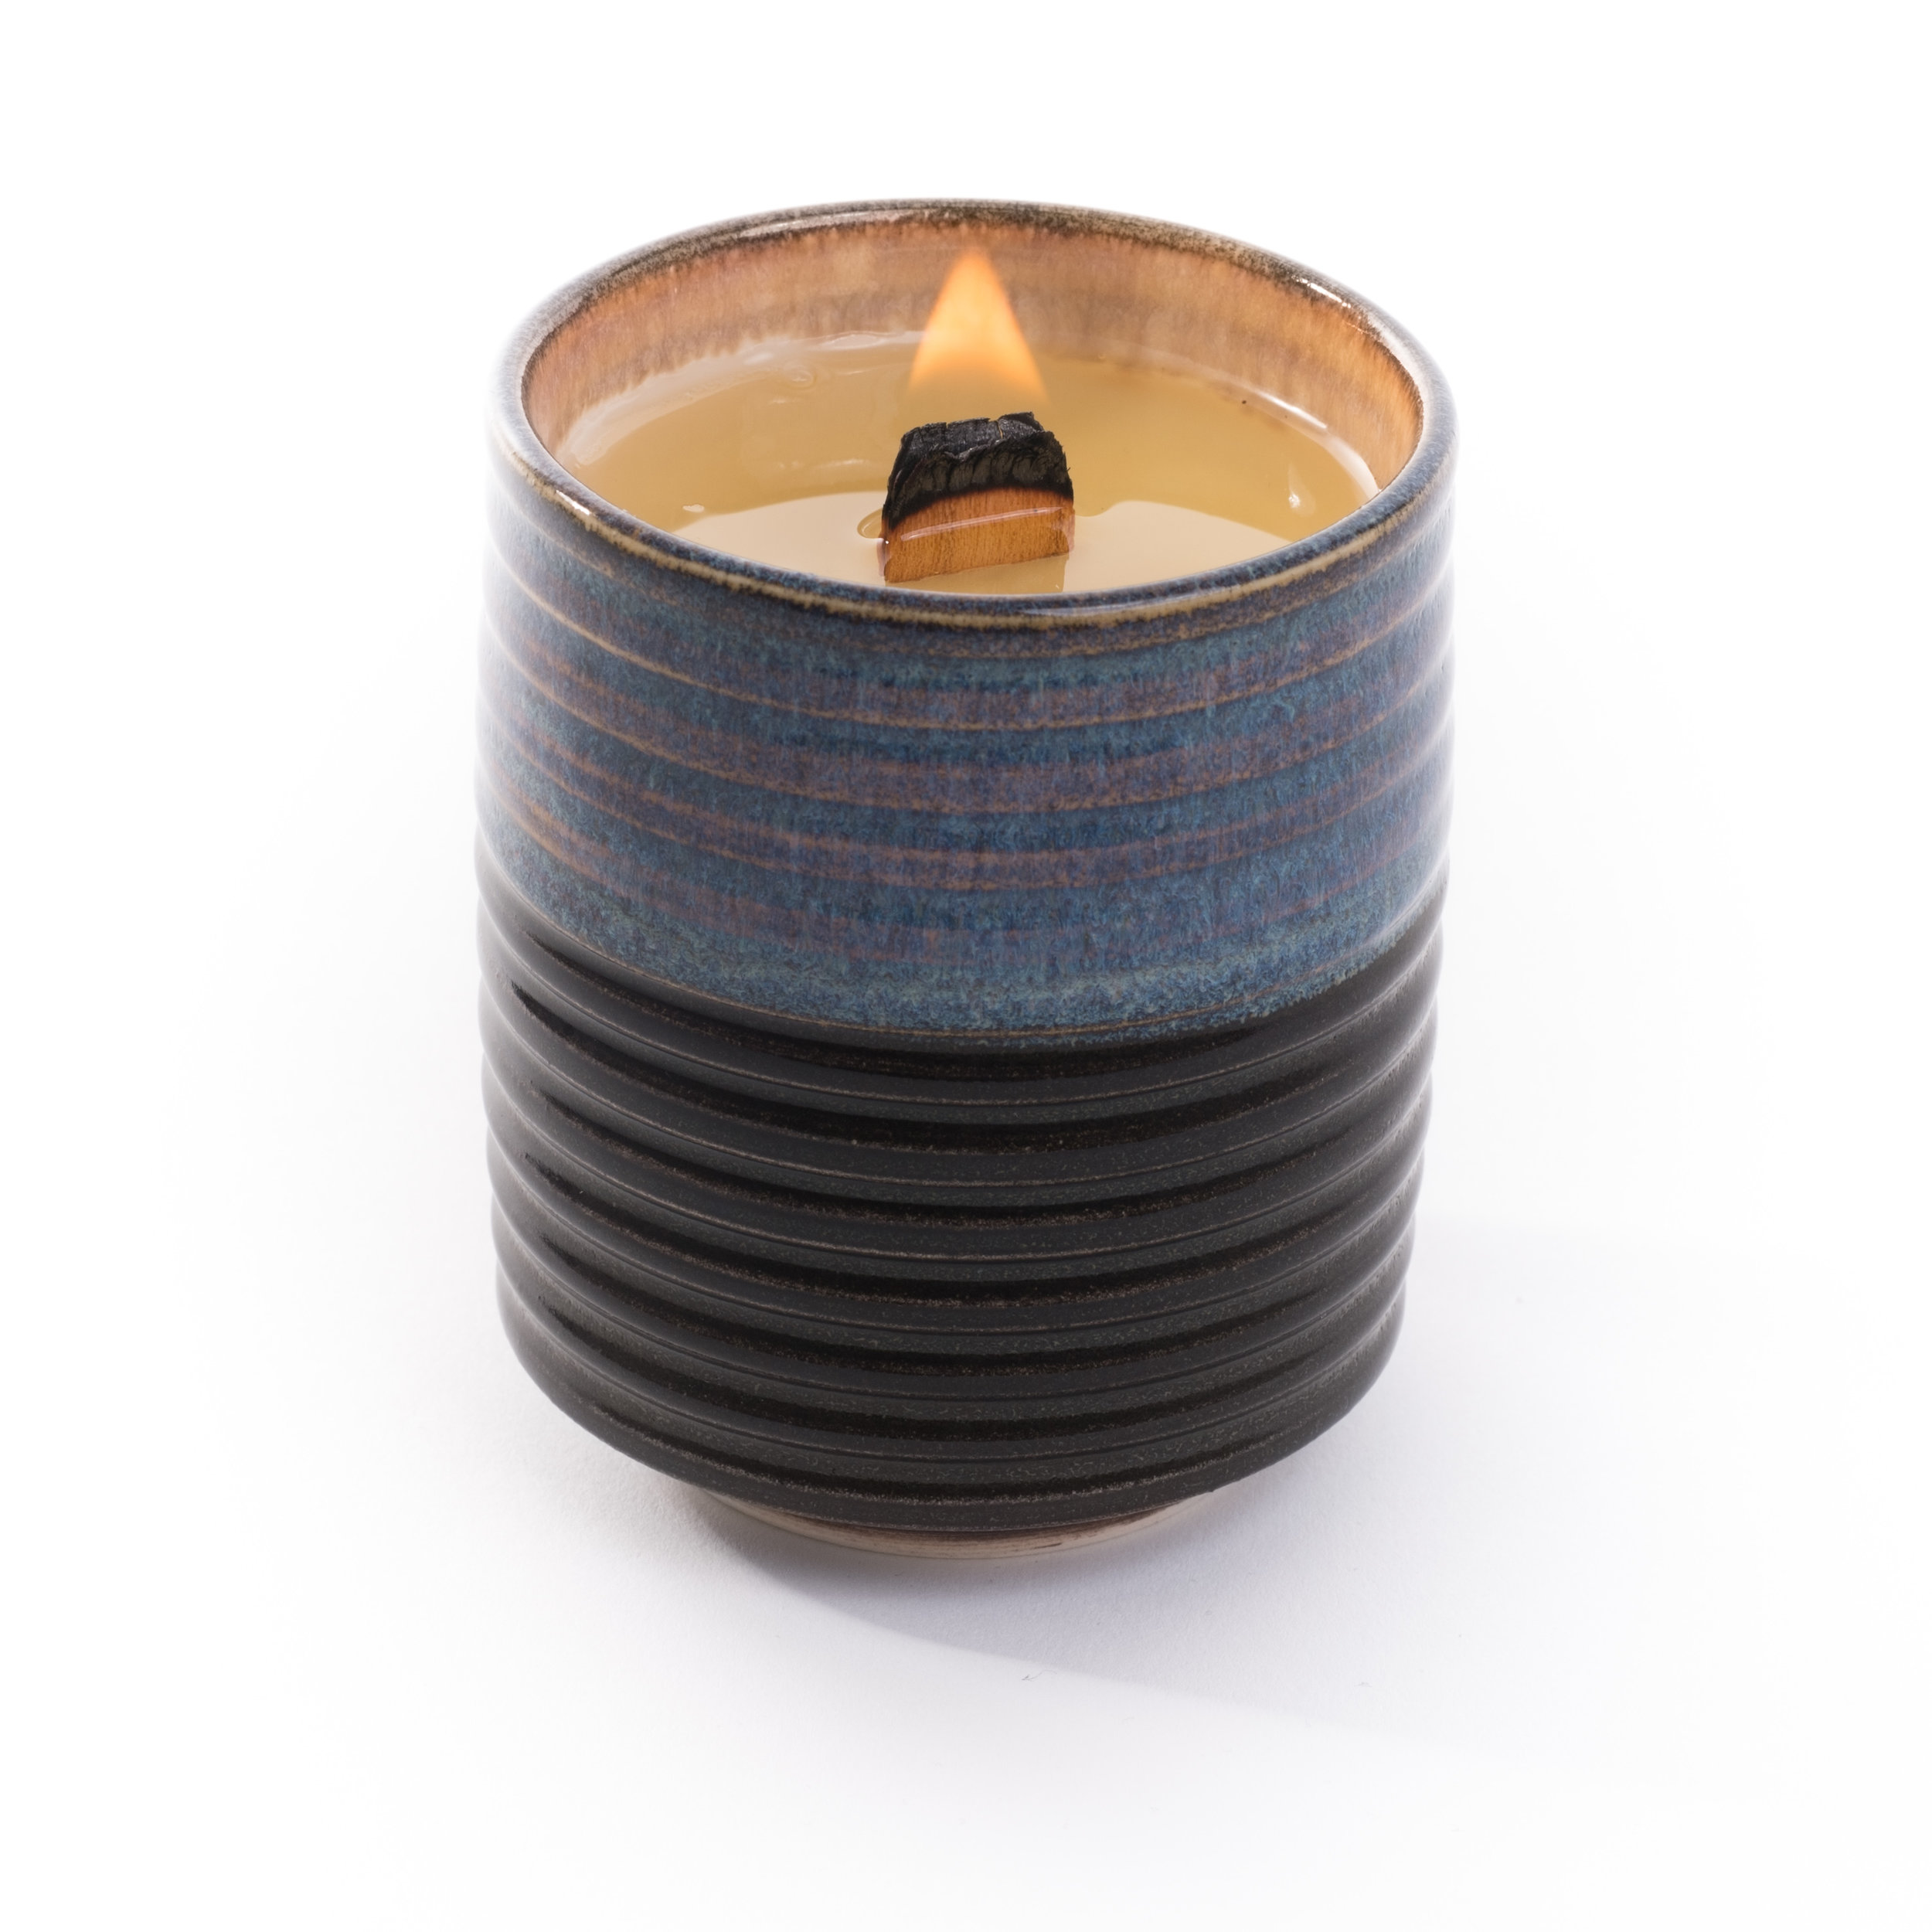 Jonathan Castro Ribbed Pillar Candle, CH Omakase Edition